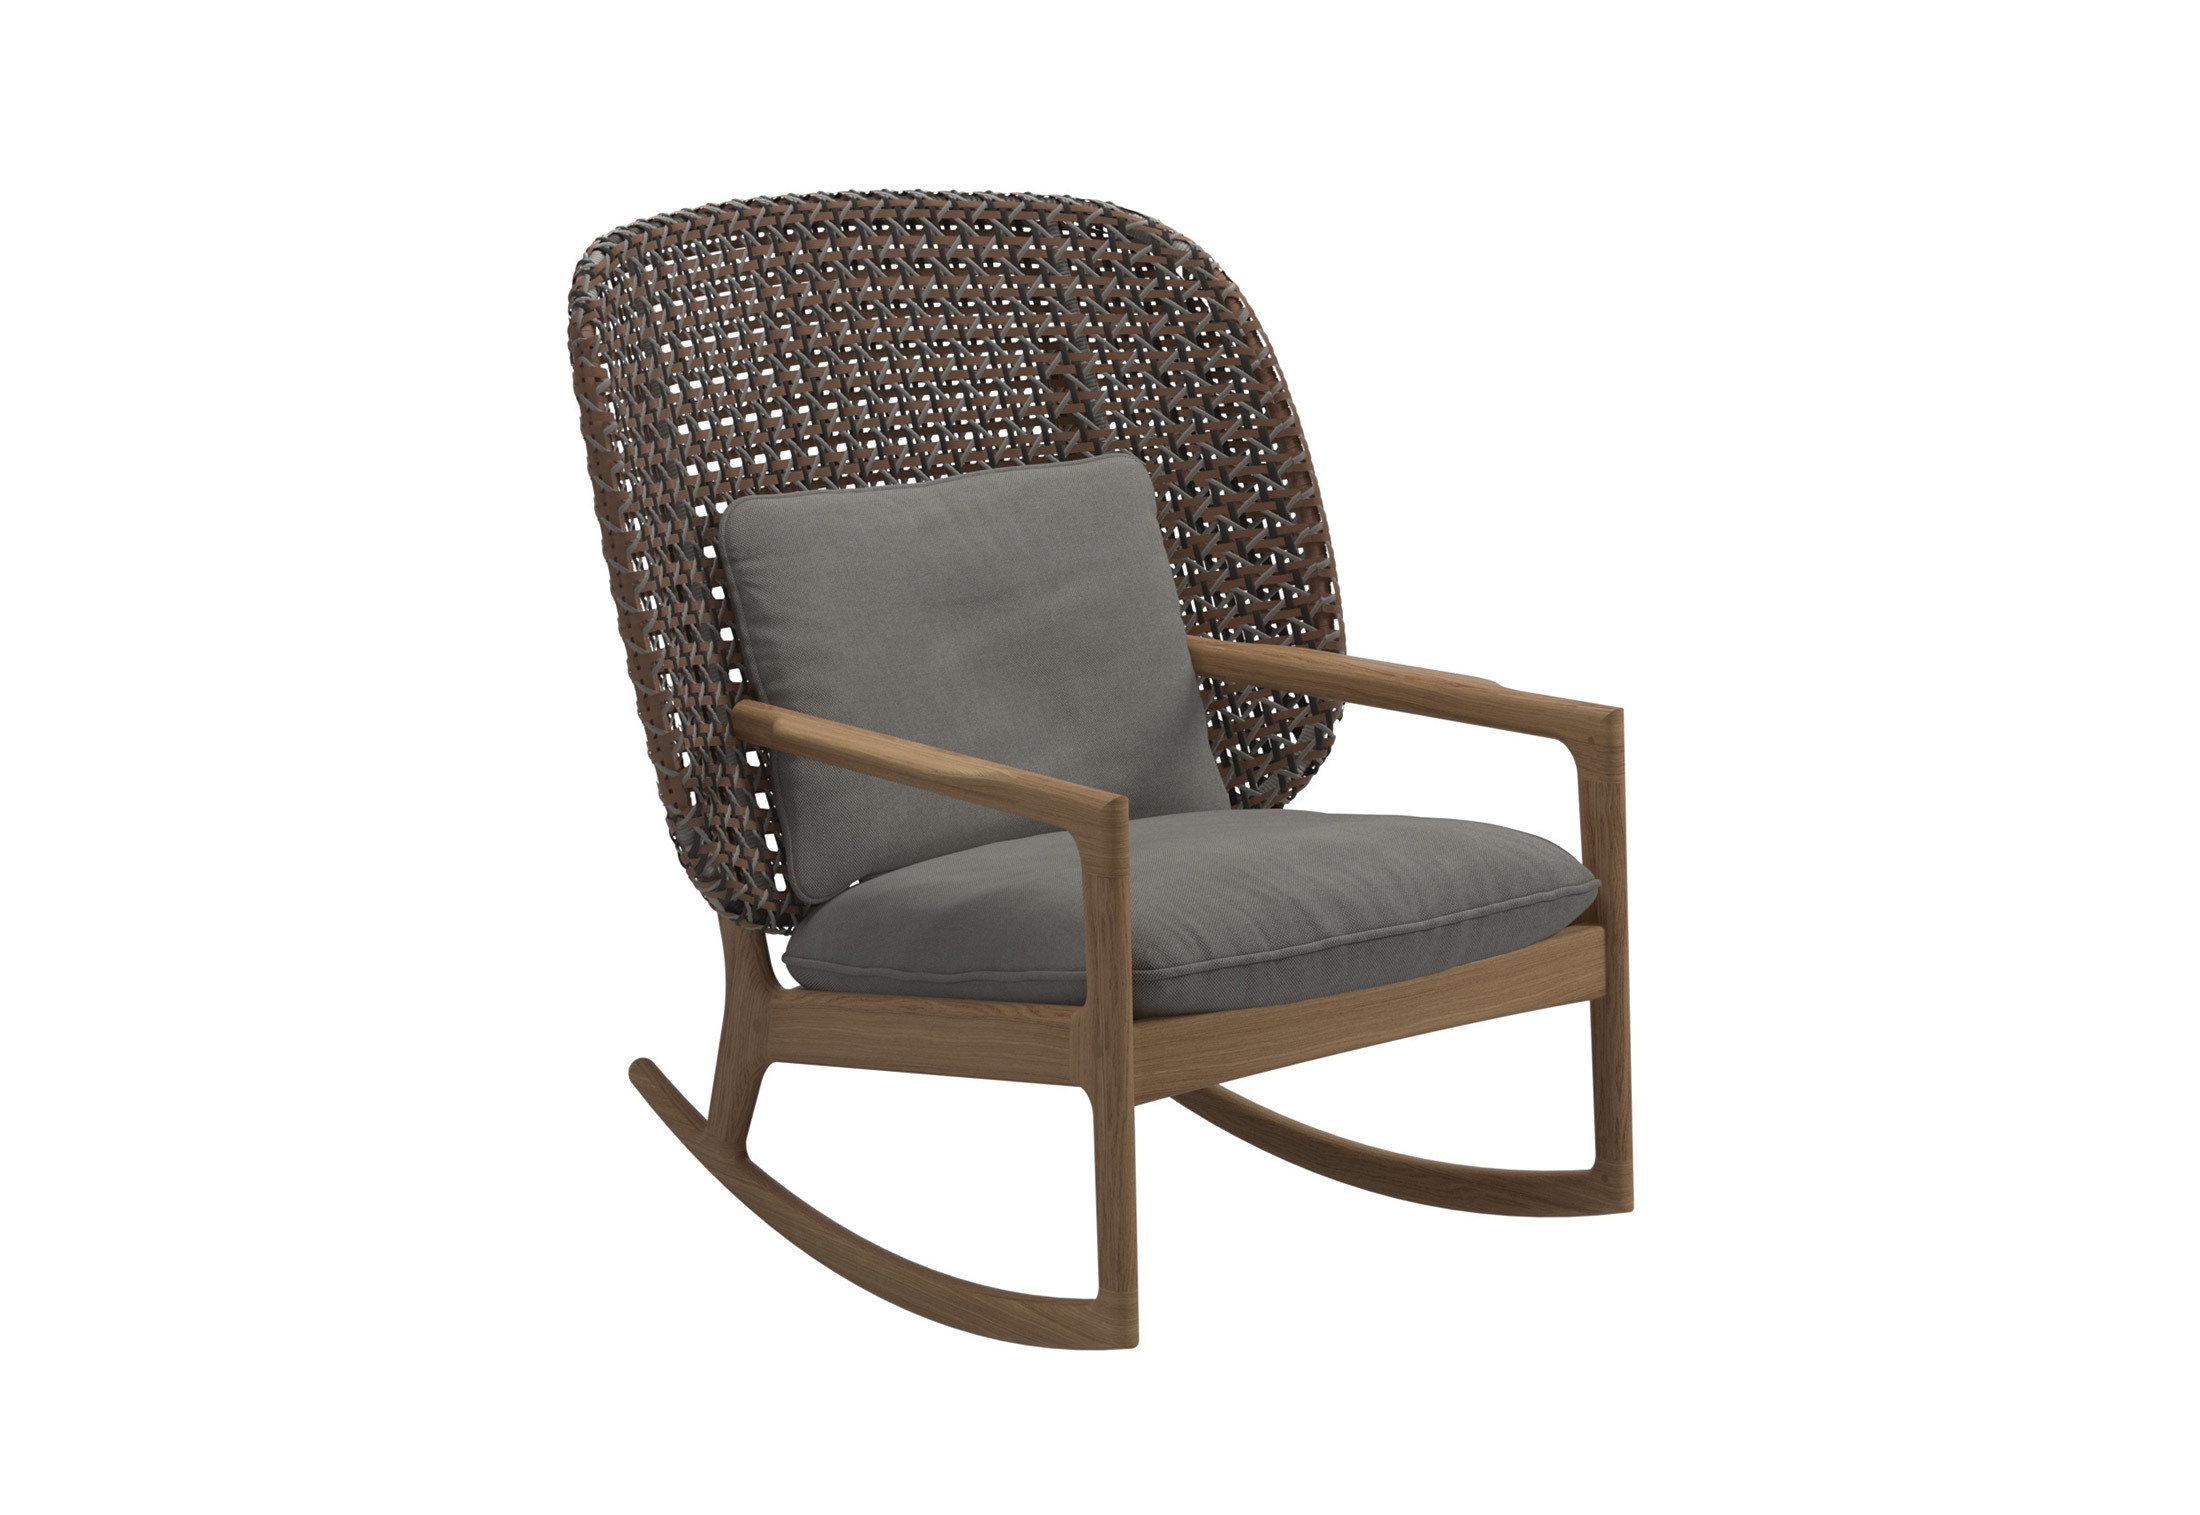 Kay High Rocking Chair By Gloster Furniture Stylepark